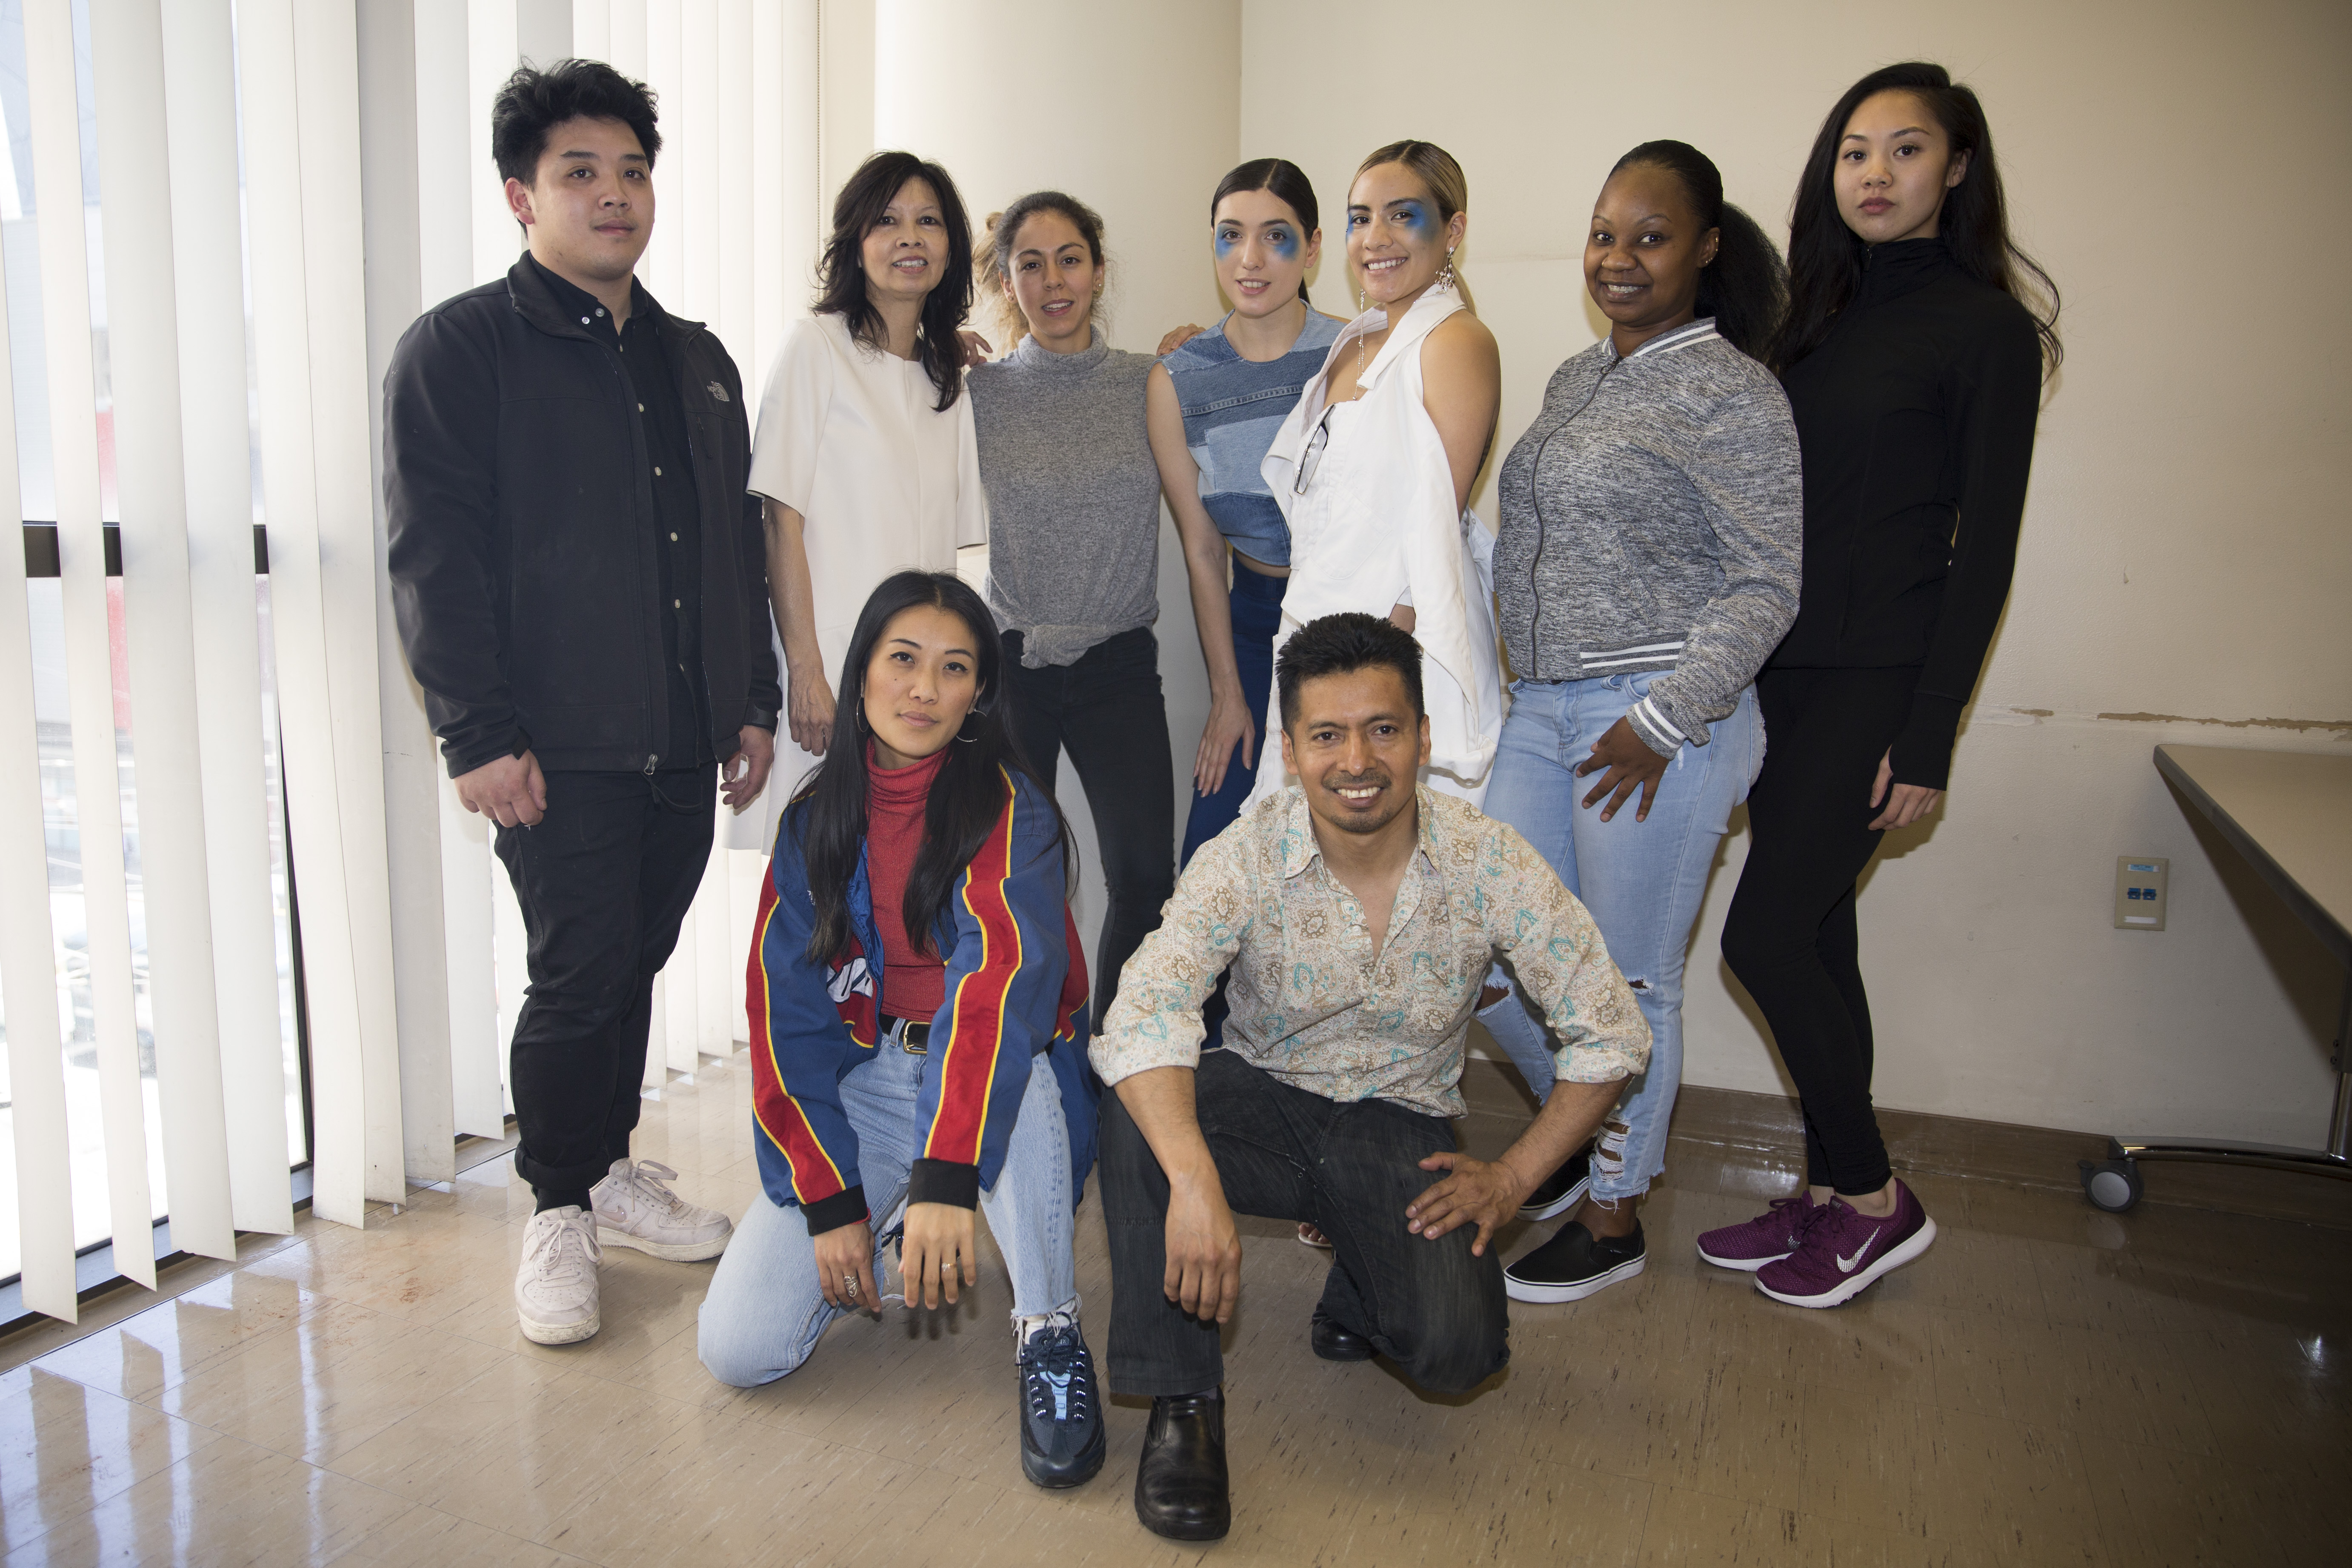 Designers, models, and others associated with the show pose in a group photo in Room 322 of Downtown Campus in San Francisco. From top left to right: Christopher Wong, Prof. Priscilla Fong, Sara Espinoza, Inna Nikolskaia, Daphne Dominia, Emerald Gilbert, Renee Gee. From bottom left to right: Natasho Lo, Enrique Chavez. Photo by Alexander Wong/Courtesy of Alexander Wong.